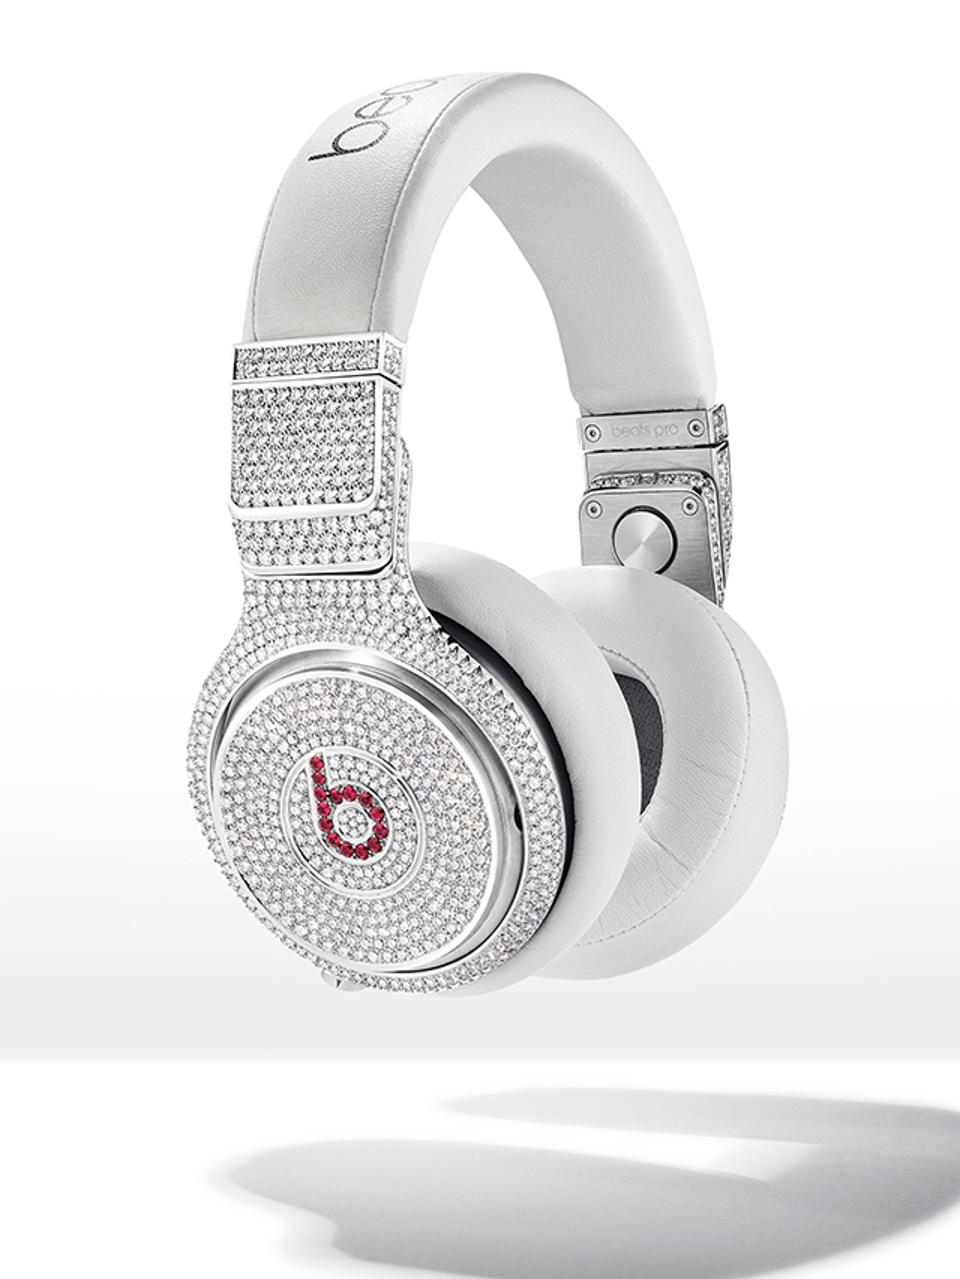 Diamond and ruby Beats Pro headphones made by Graff. To be auctioned at Christie's.